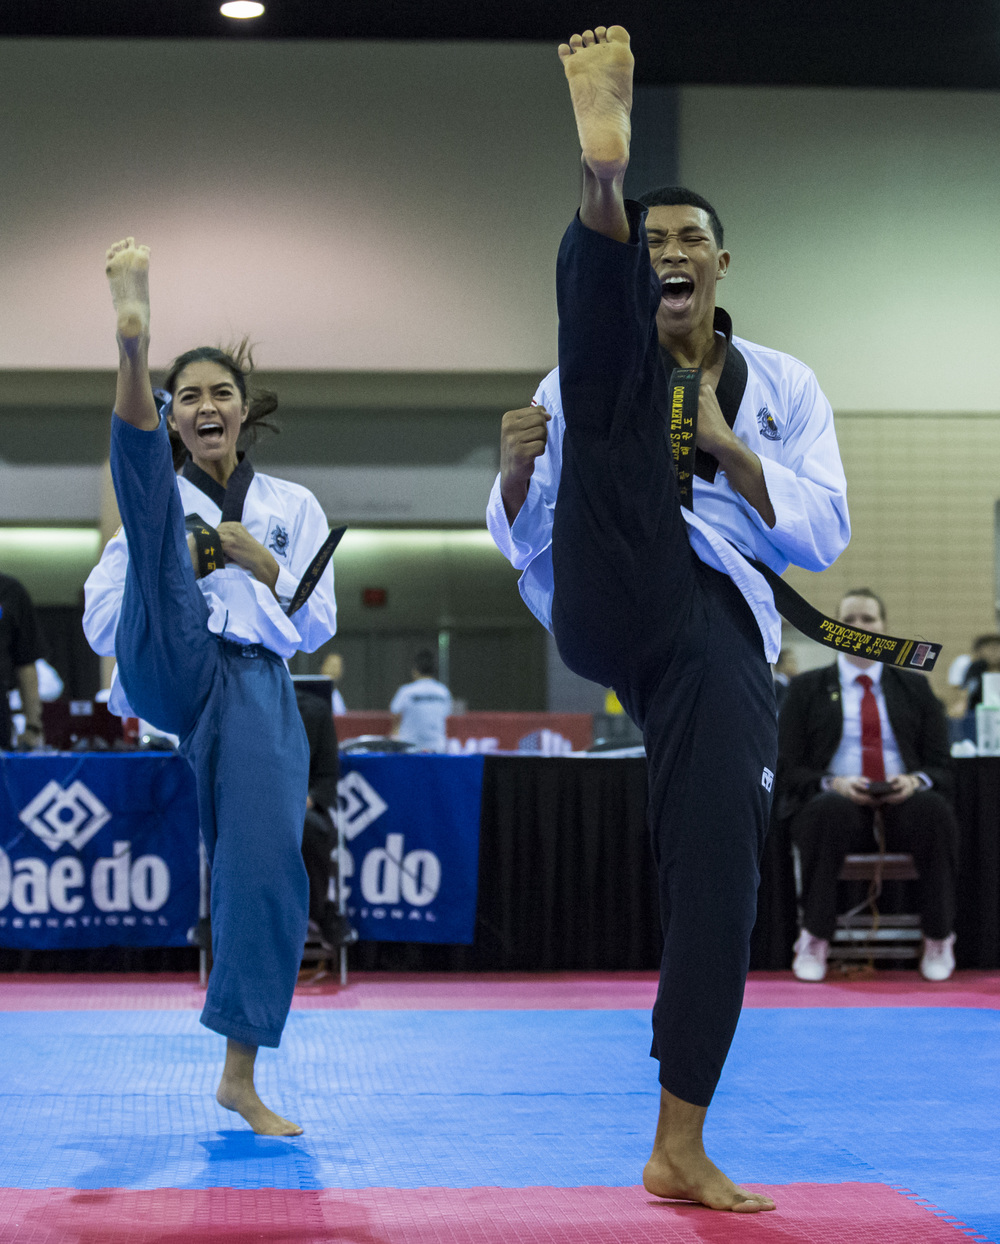 Angelica Jenson, left, and Princeton Rush, right, compete in the world class black belt co-ed poomsae pairs during the USA Taekwondo National Championship in the Greater Richmond Convention Center in Richmond, Va. on Thursday, July 7, 2016.